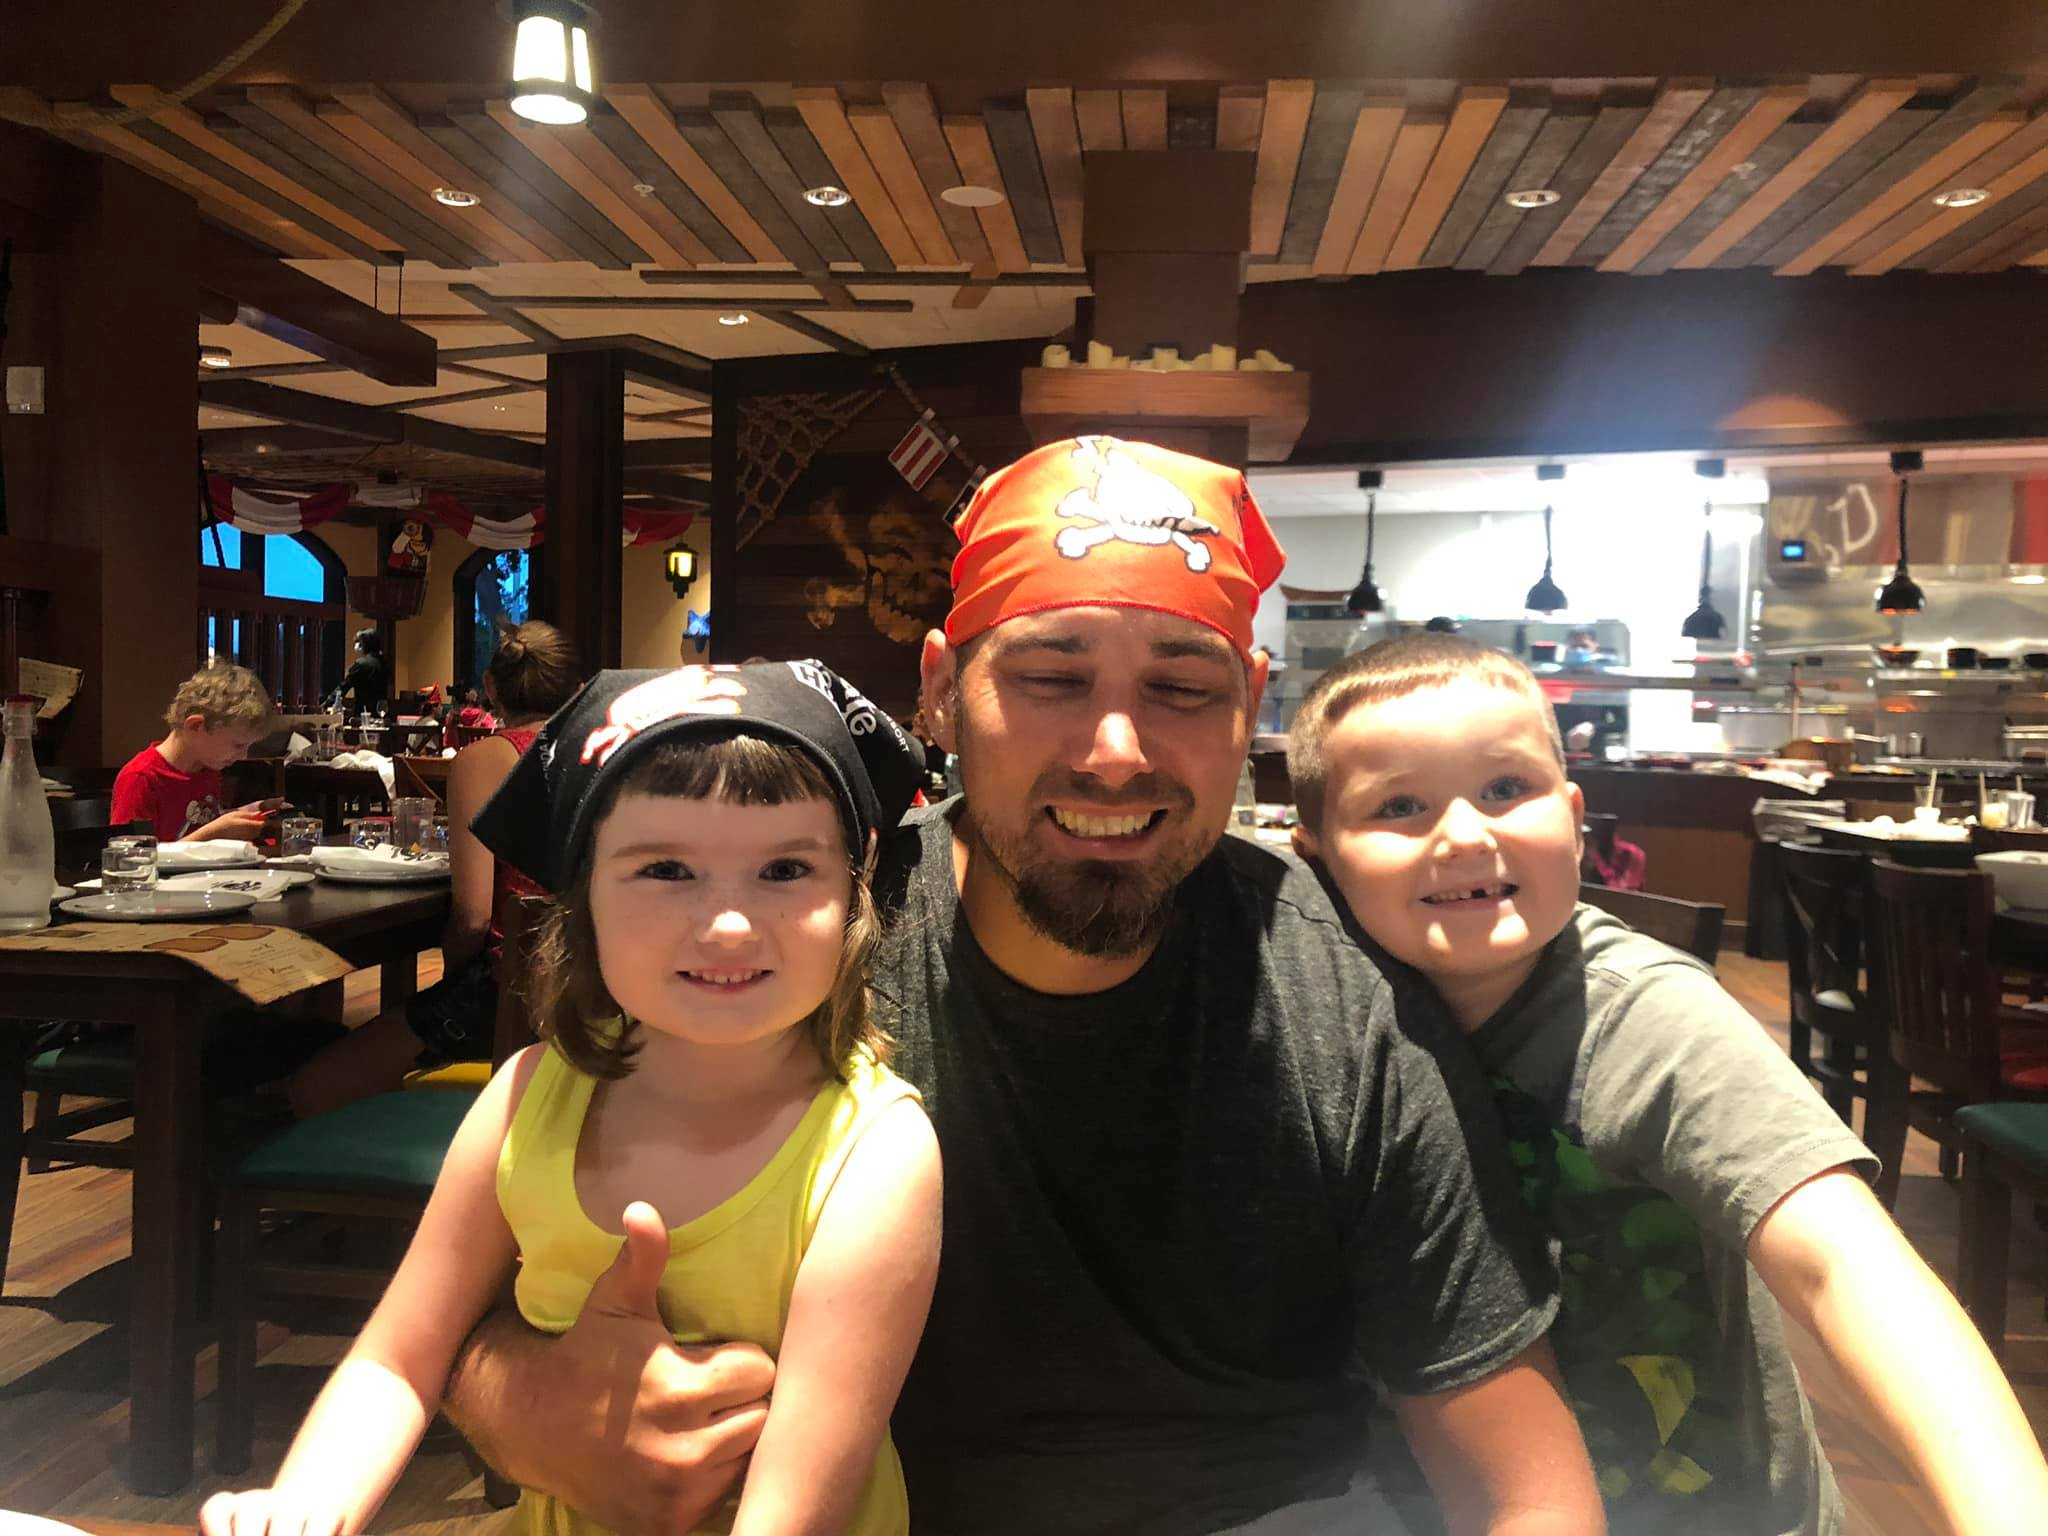 Dad with his two little kids at the table at Shipwreck restaurant at Pirate Island Hotel.   A Guide to LEGOLAND Hotels in Florida